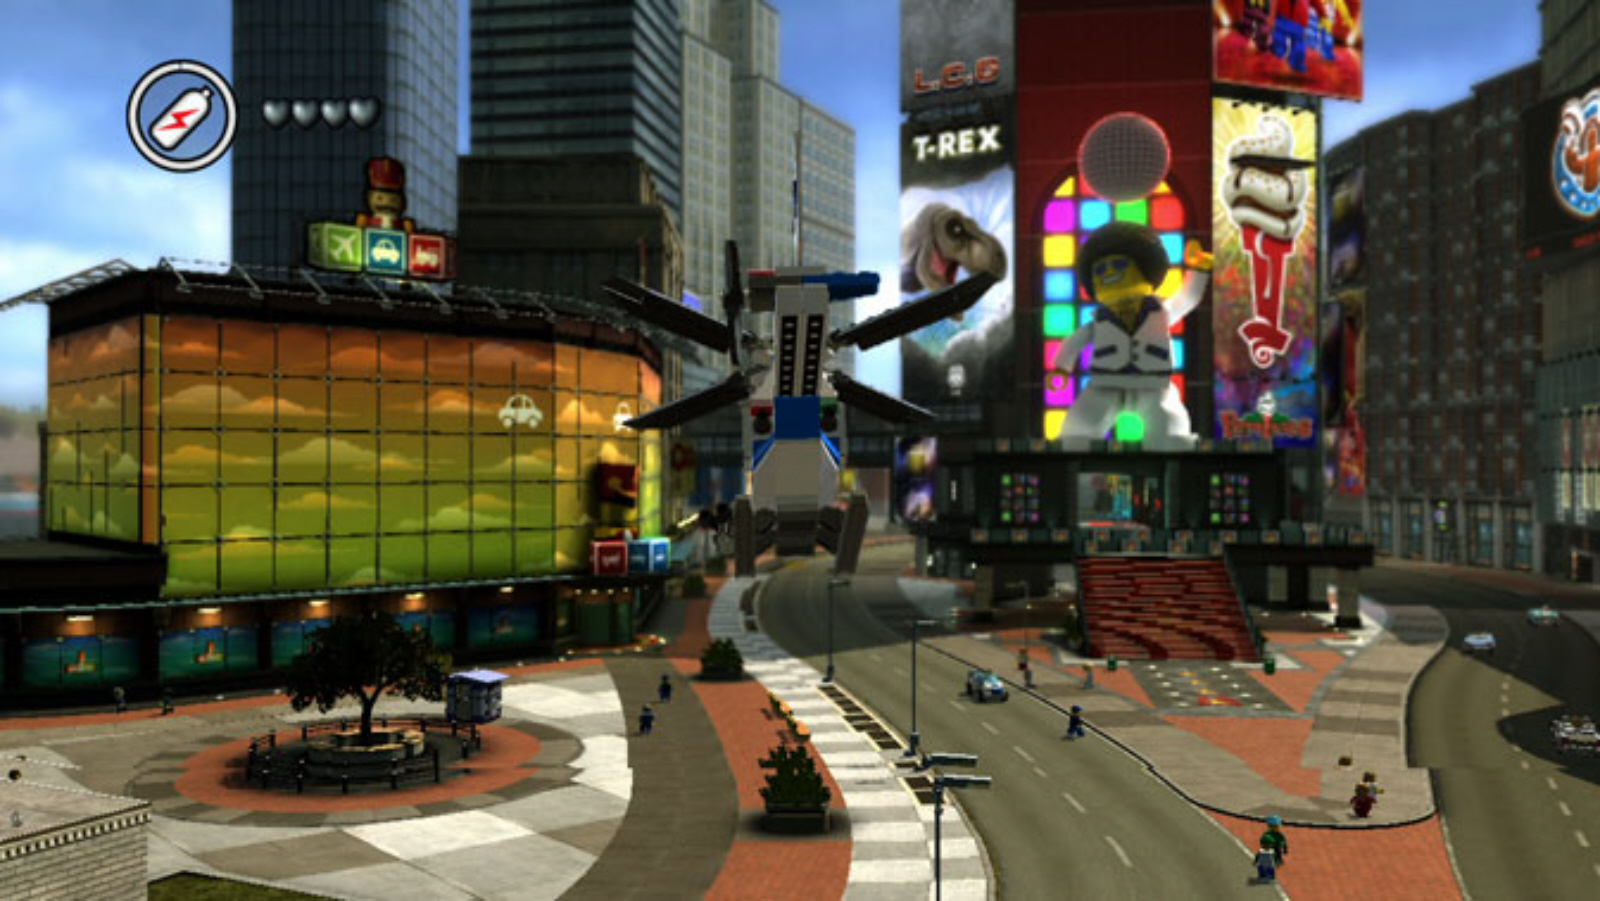 lego city undercover screenshots wii u lego city strories grand theft lego in action flying. Black Bedroom Furniture Sets. Home Design Ideas